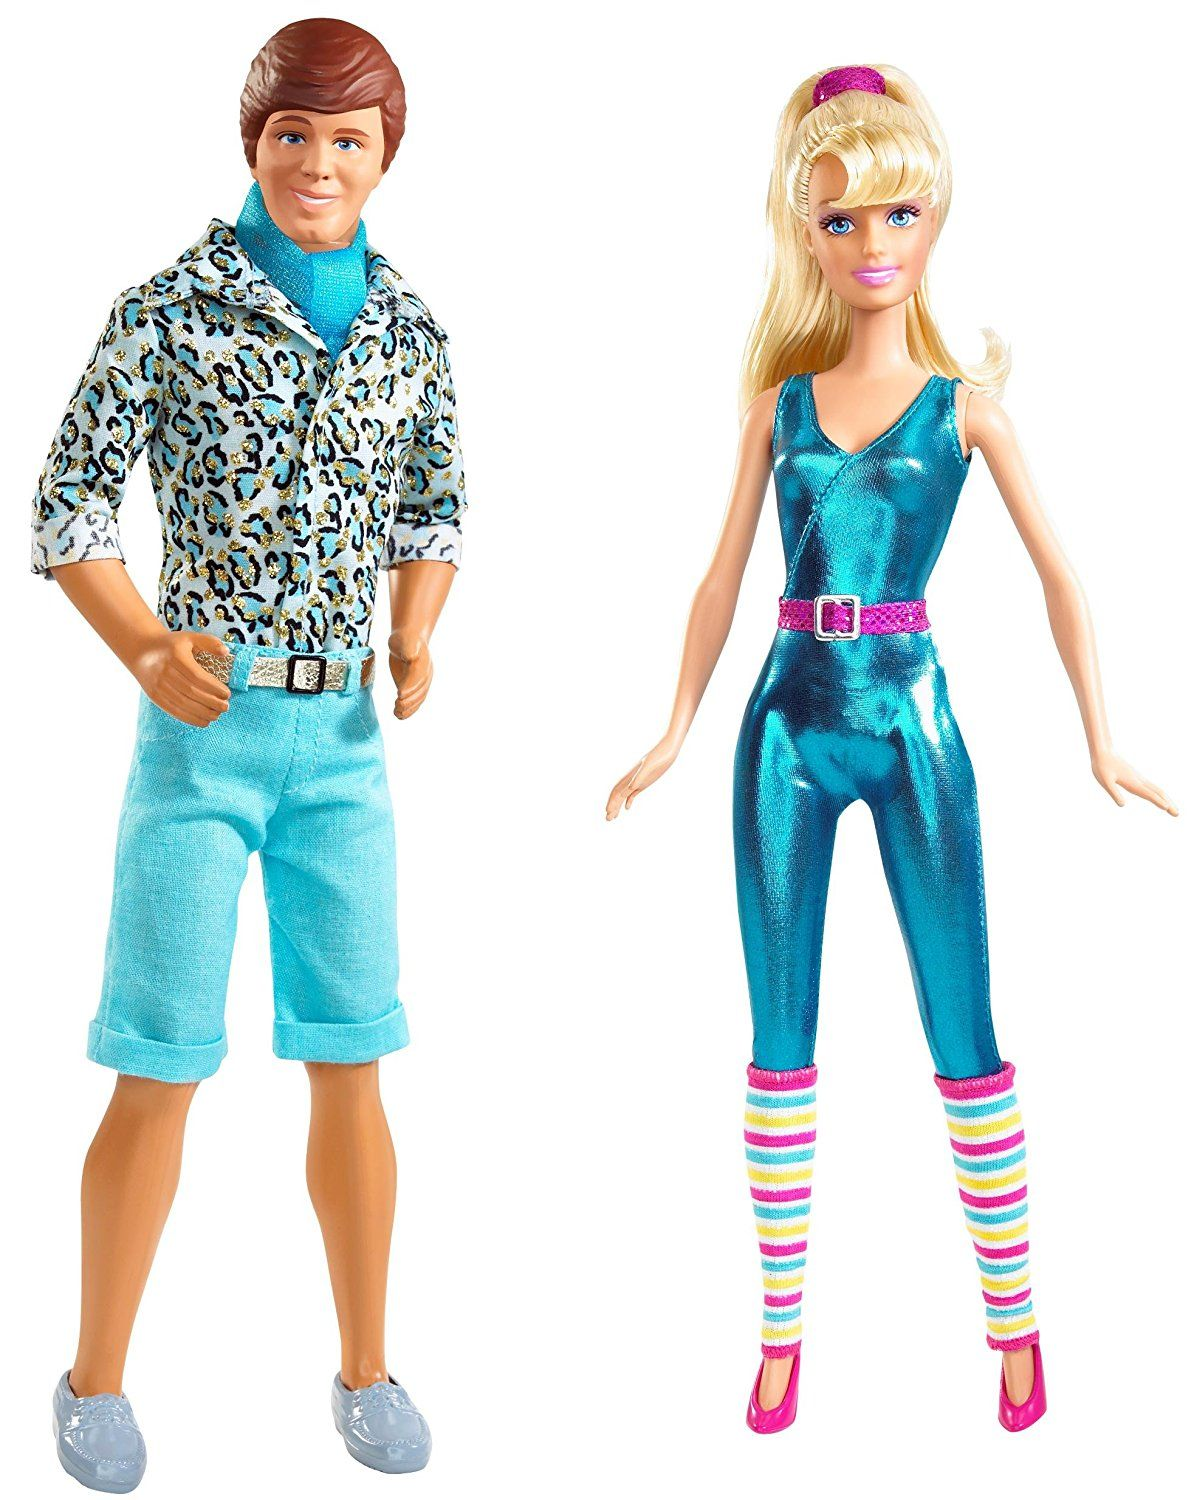 2a812c9b5cc15 Image result for images barbie and ken dolls